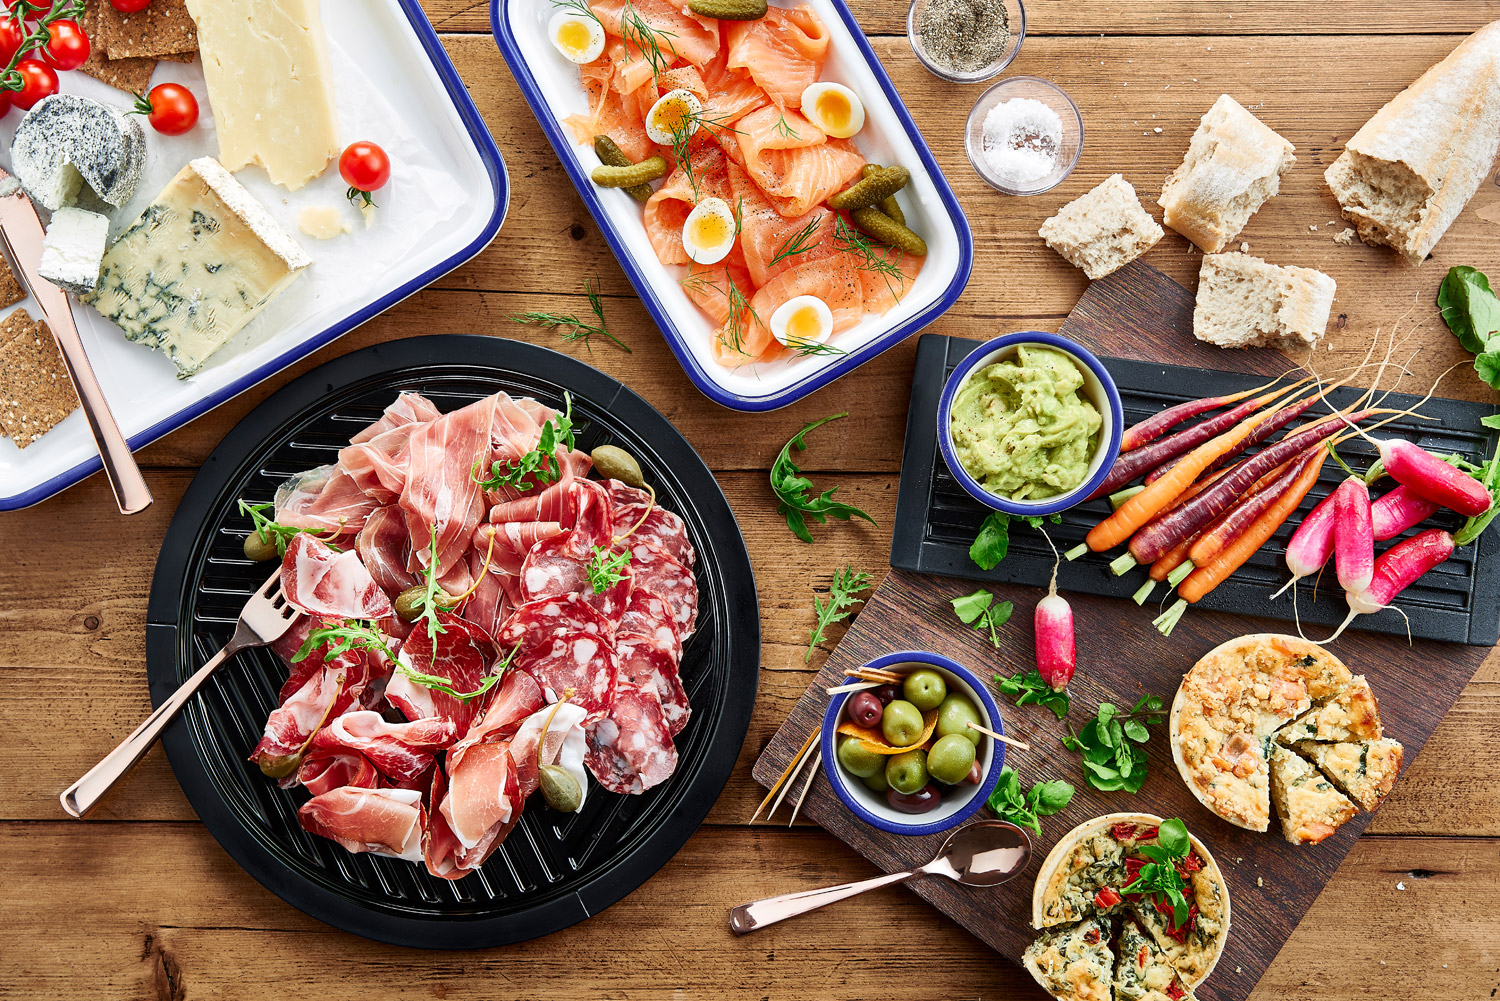 Overhead shot of various meats, cheeses, olives, quiches, bread and dip.